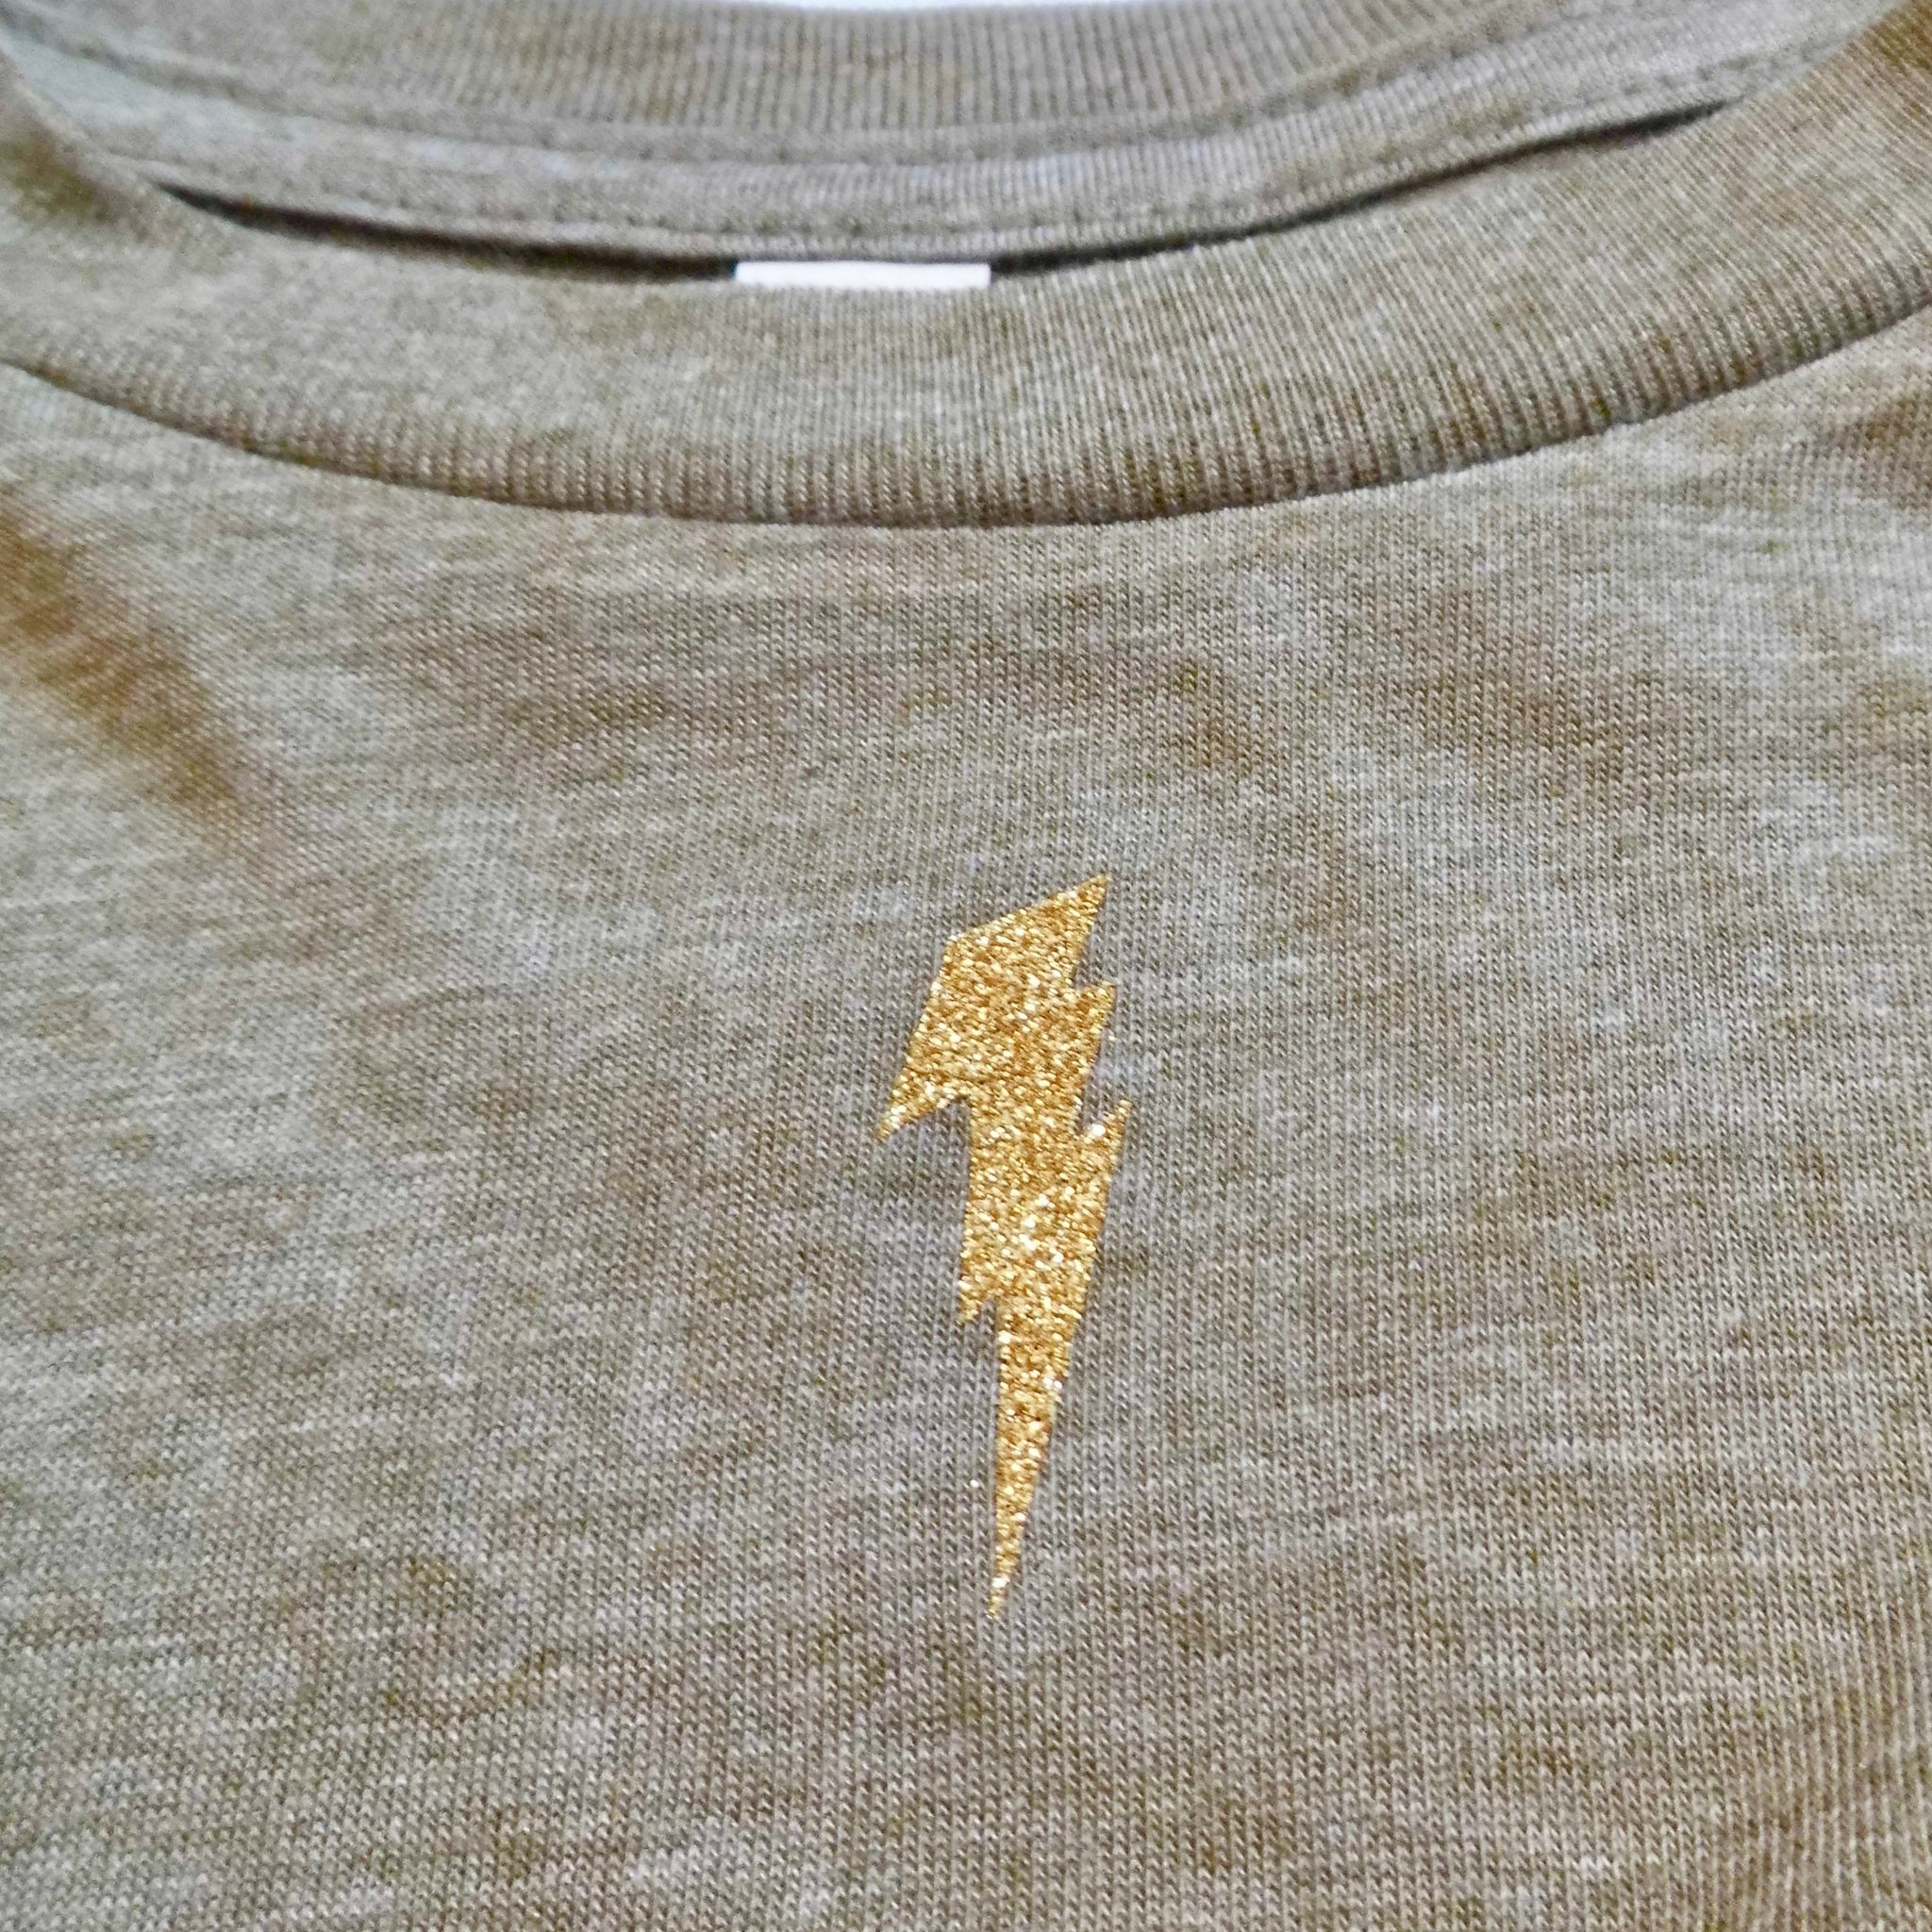 close up of gold lightning bolt